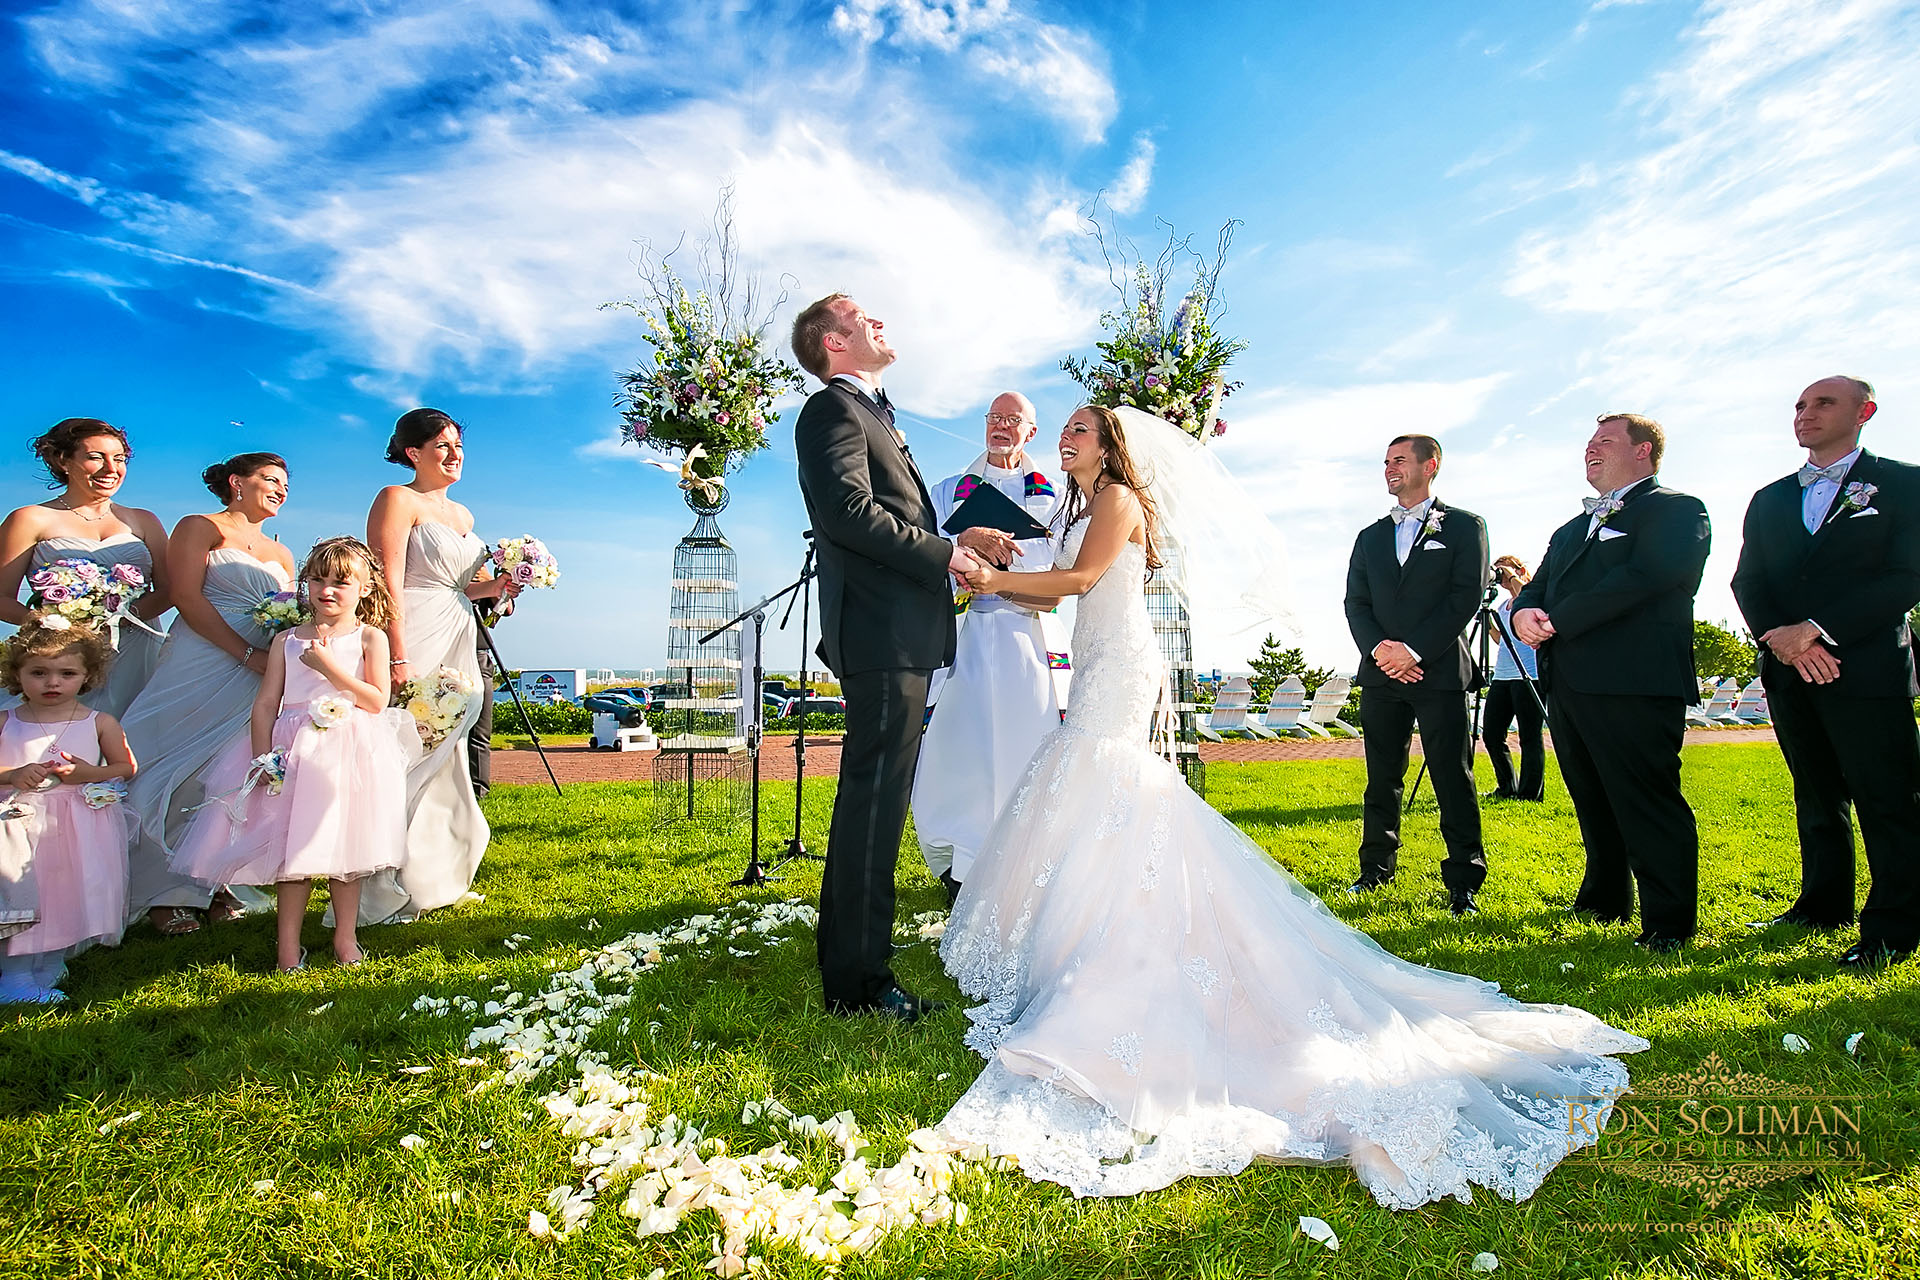 CONGRESS HALL WEDDING in cape may, new jersey